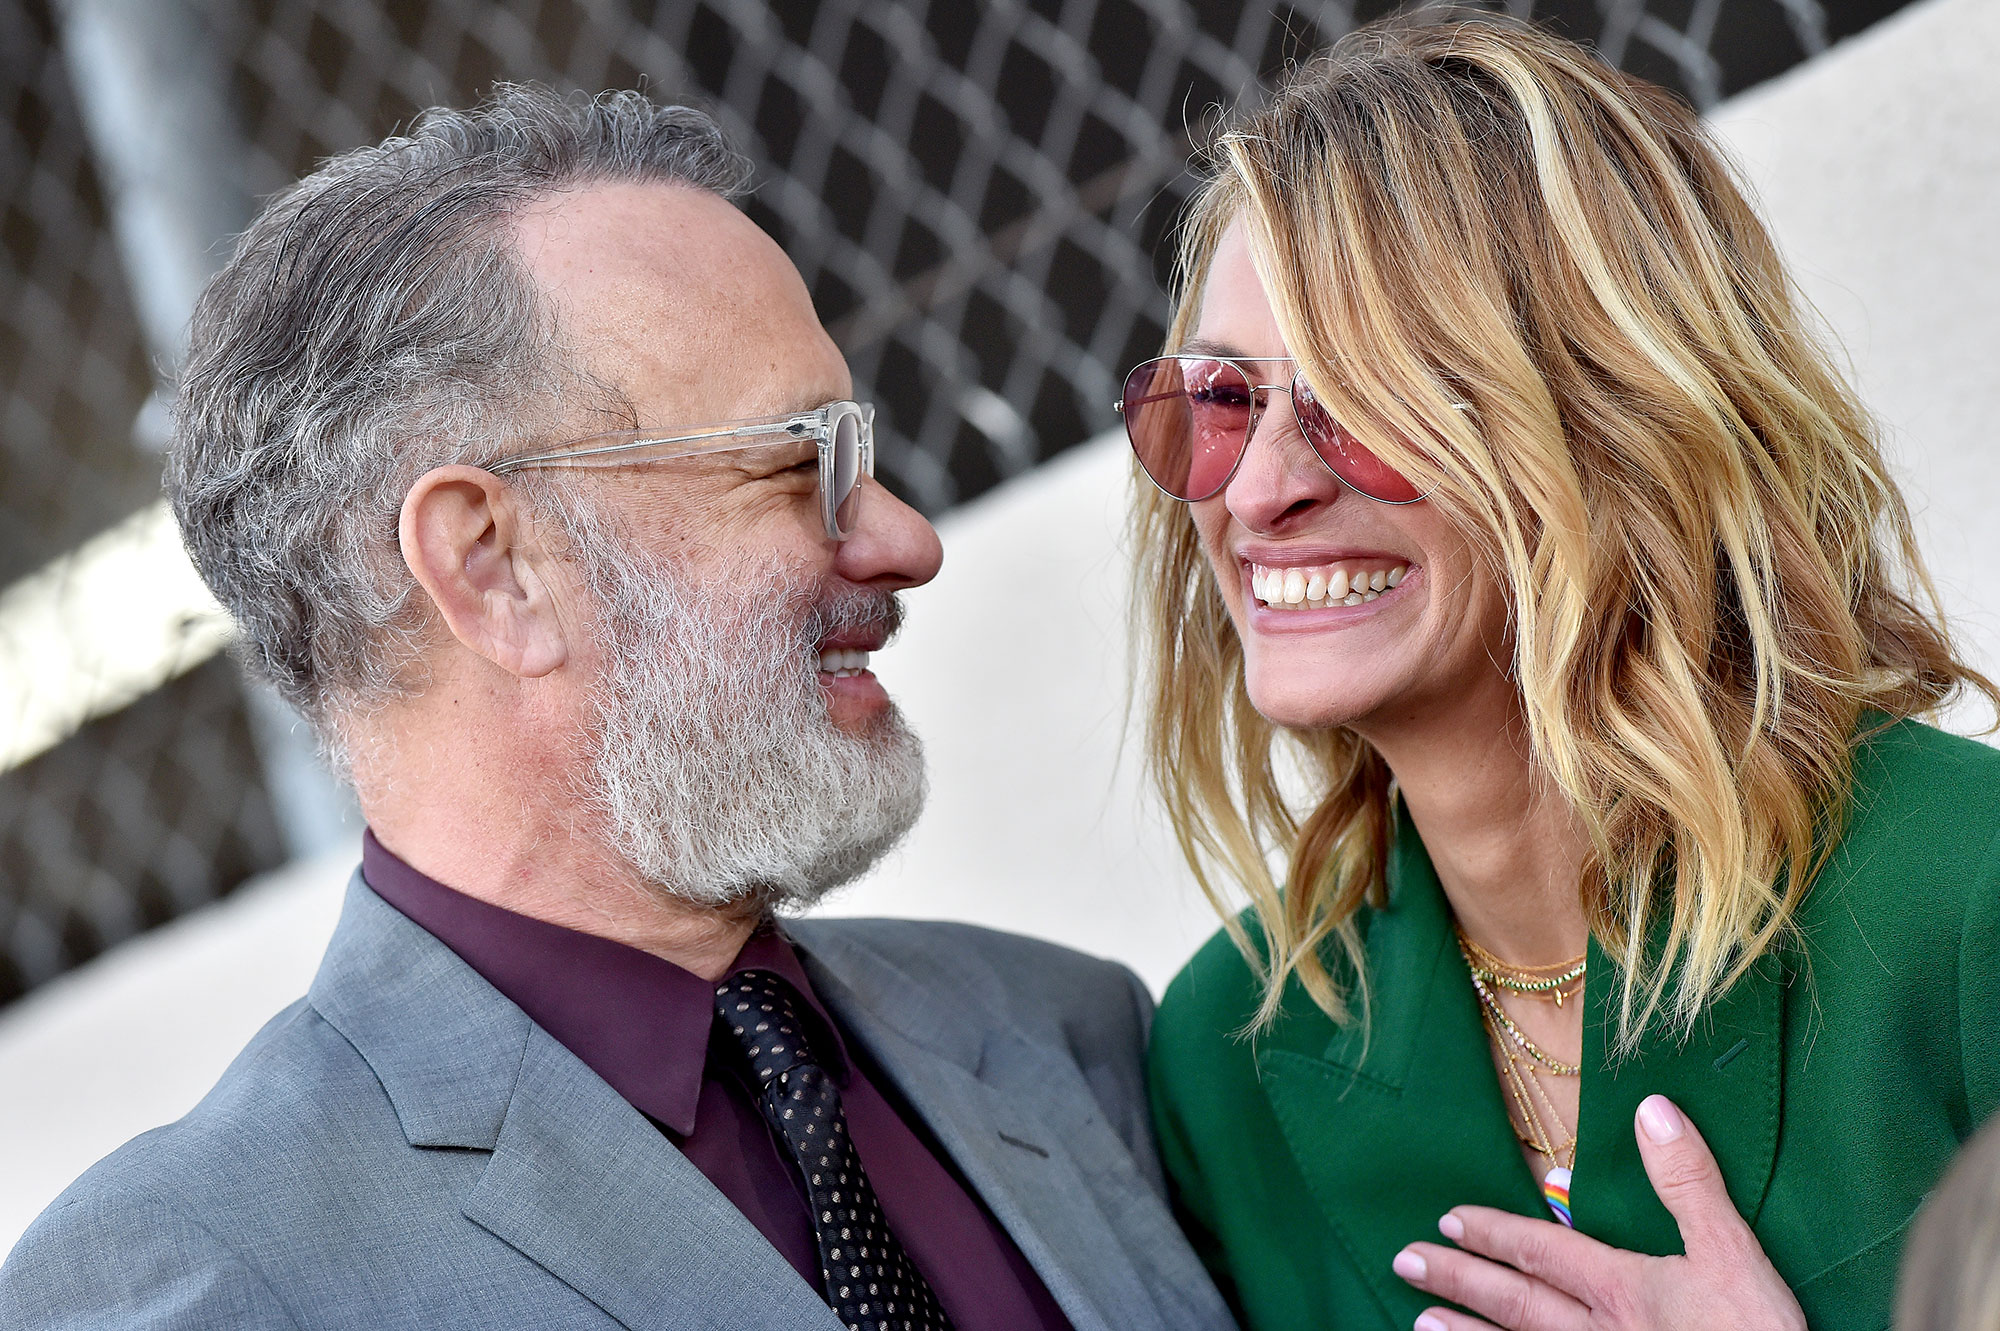 Julia Roberts Calls Tom Hanks 'Super Hot': 'Now Everybody Knows' - Tom Hanks and Julia Roberts attend the ceremony honoring Rita Wilson with Star on the Hollywood Walk of Fame on March 29, 2019 in Hollywood, California.